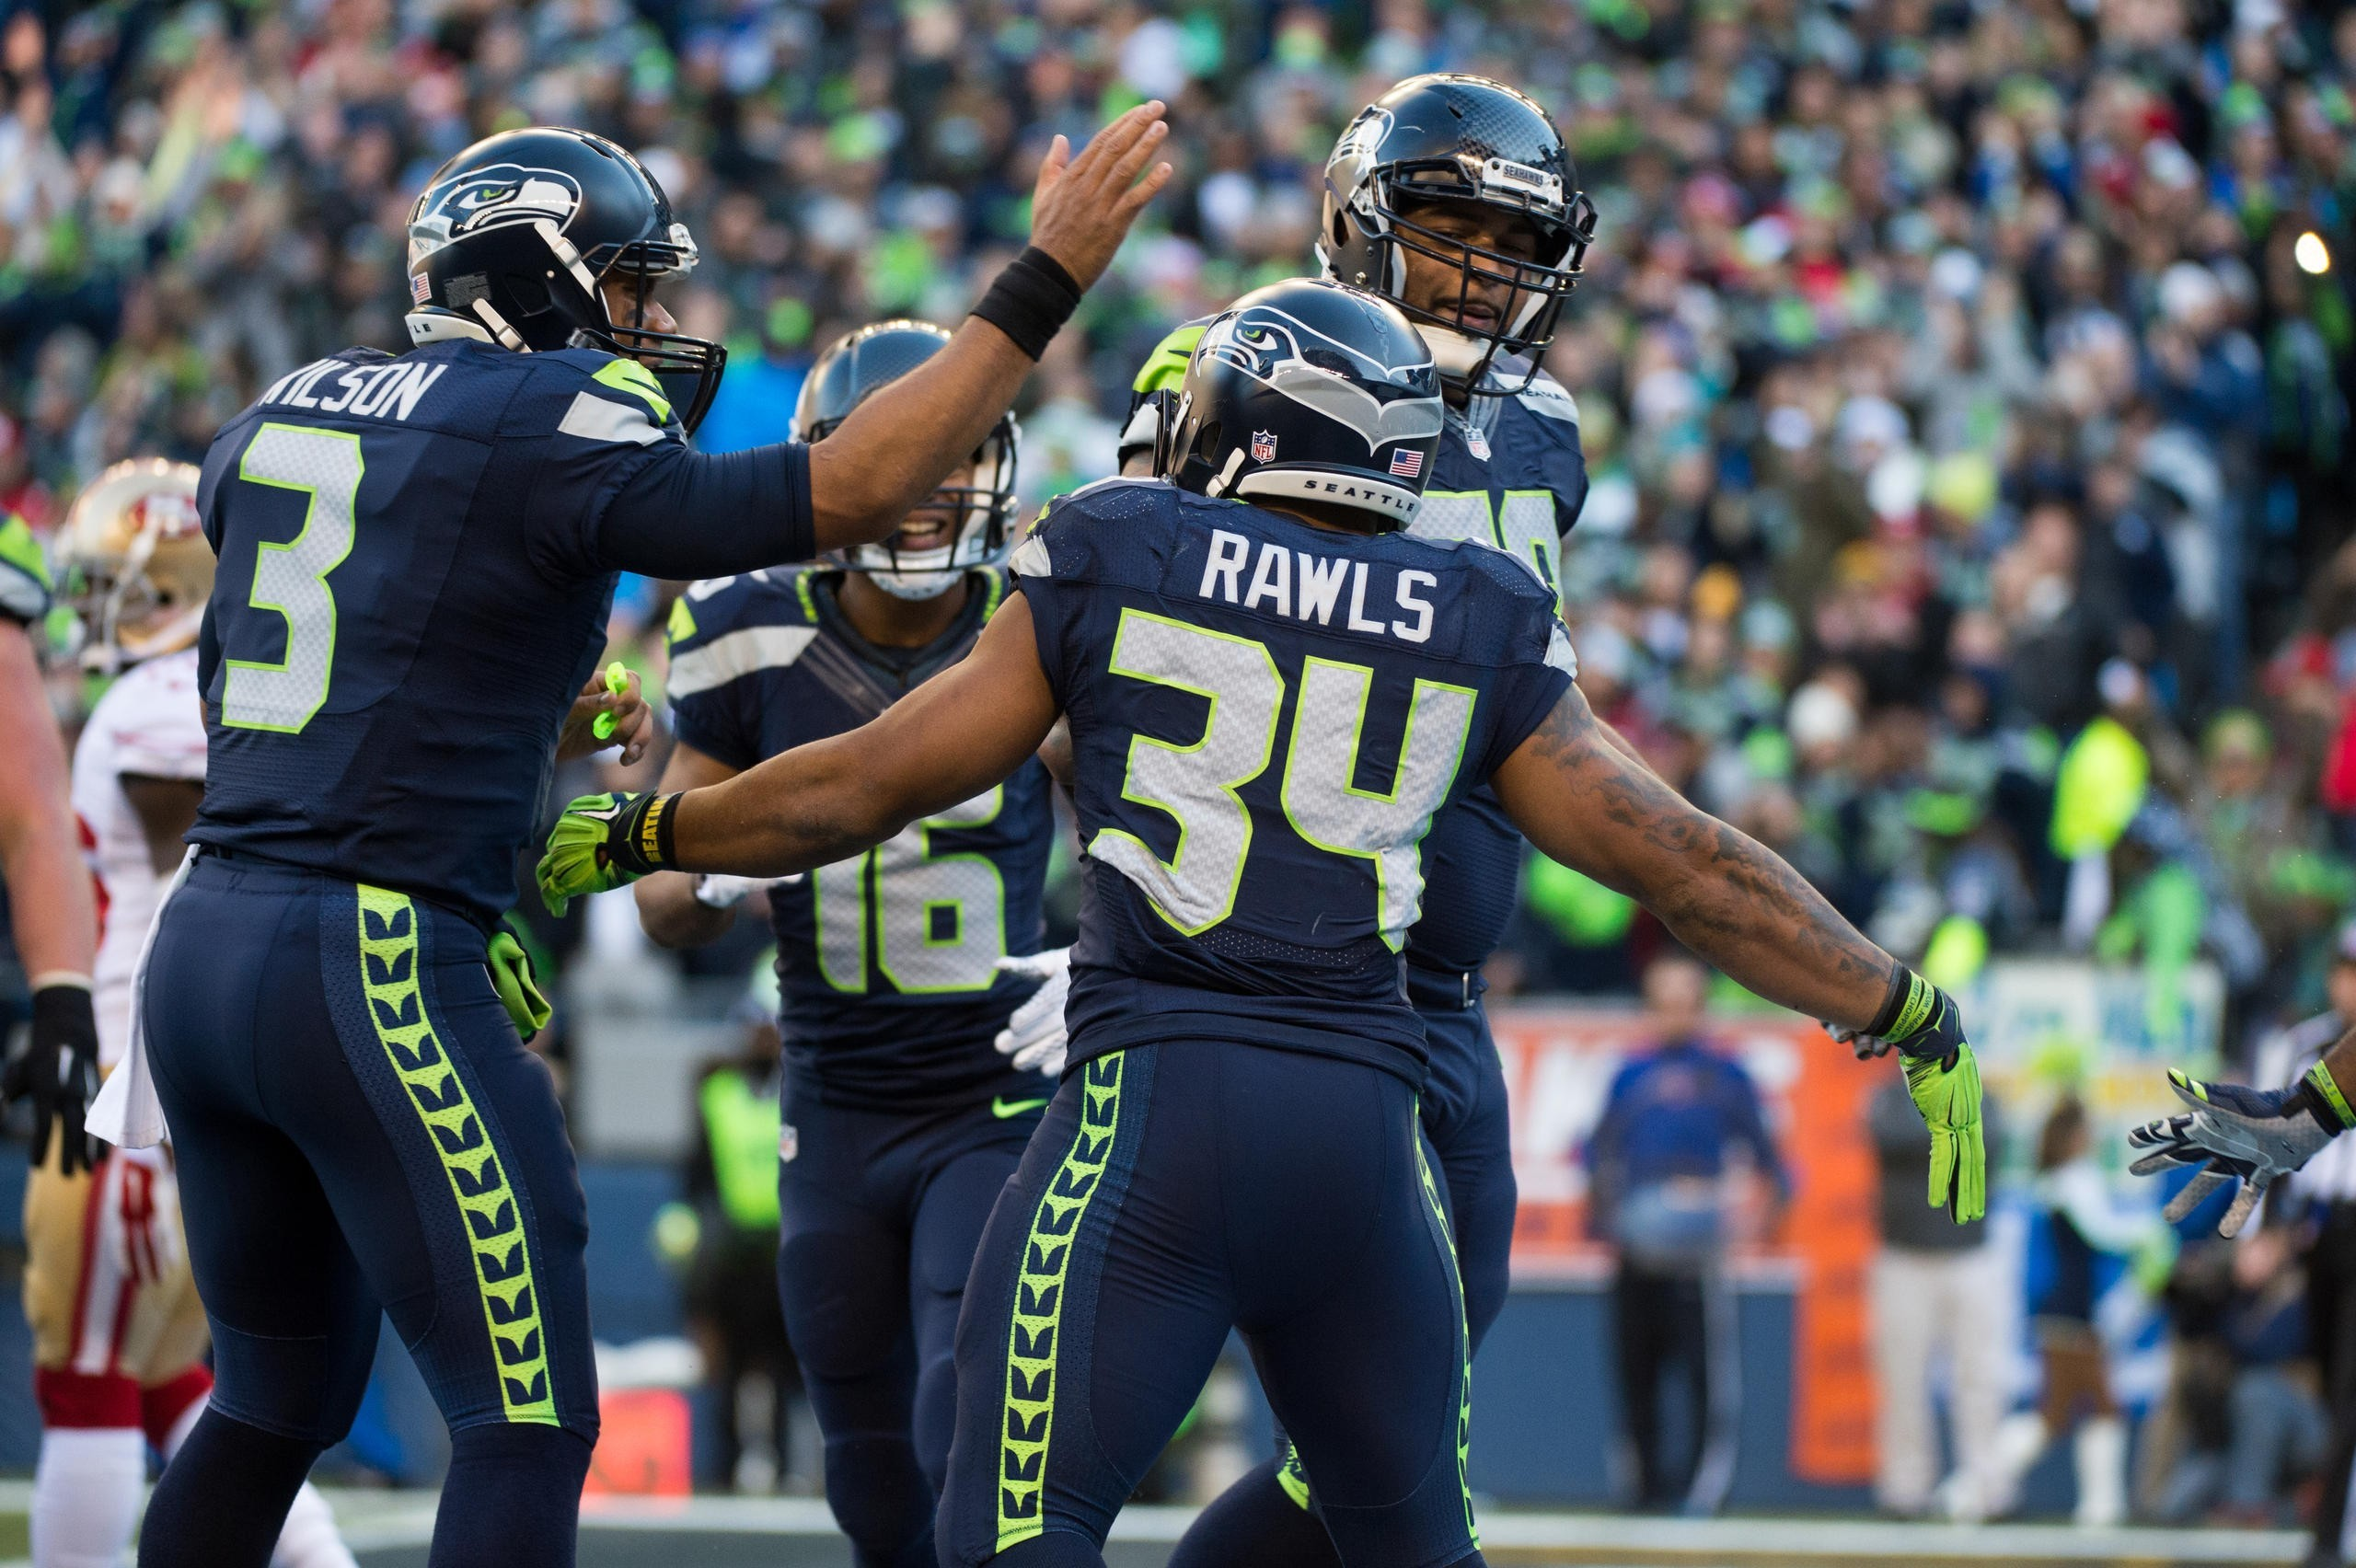 79f7e7b03 click to enlarge Russell Wilson, Thomas Rawls and the rest of the Seahawks  hope to have something to